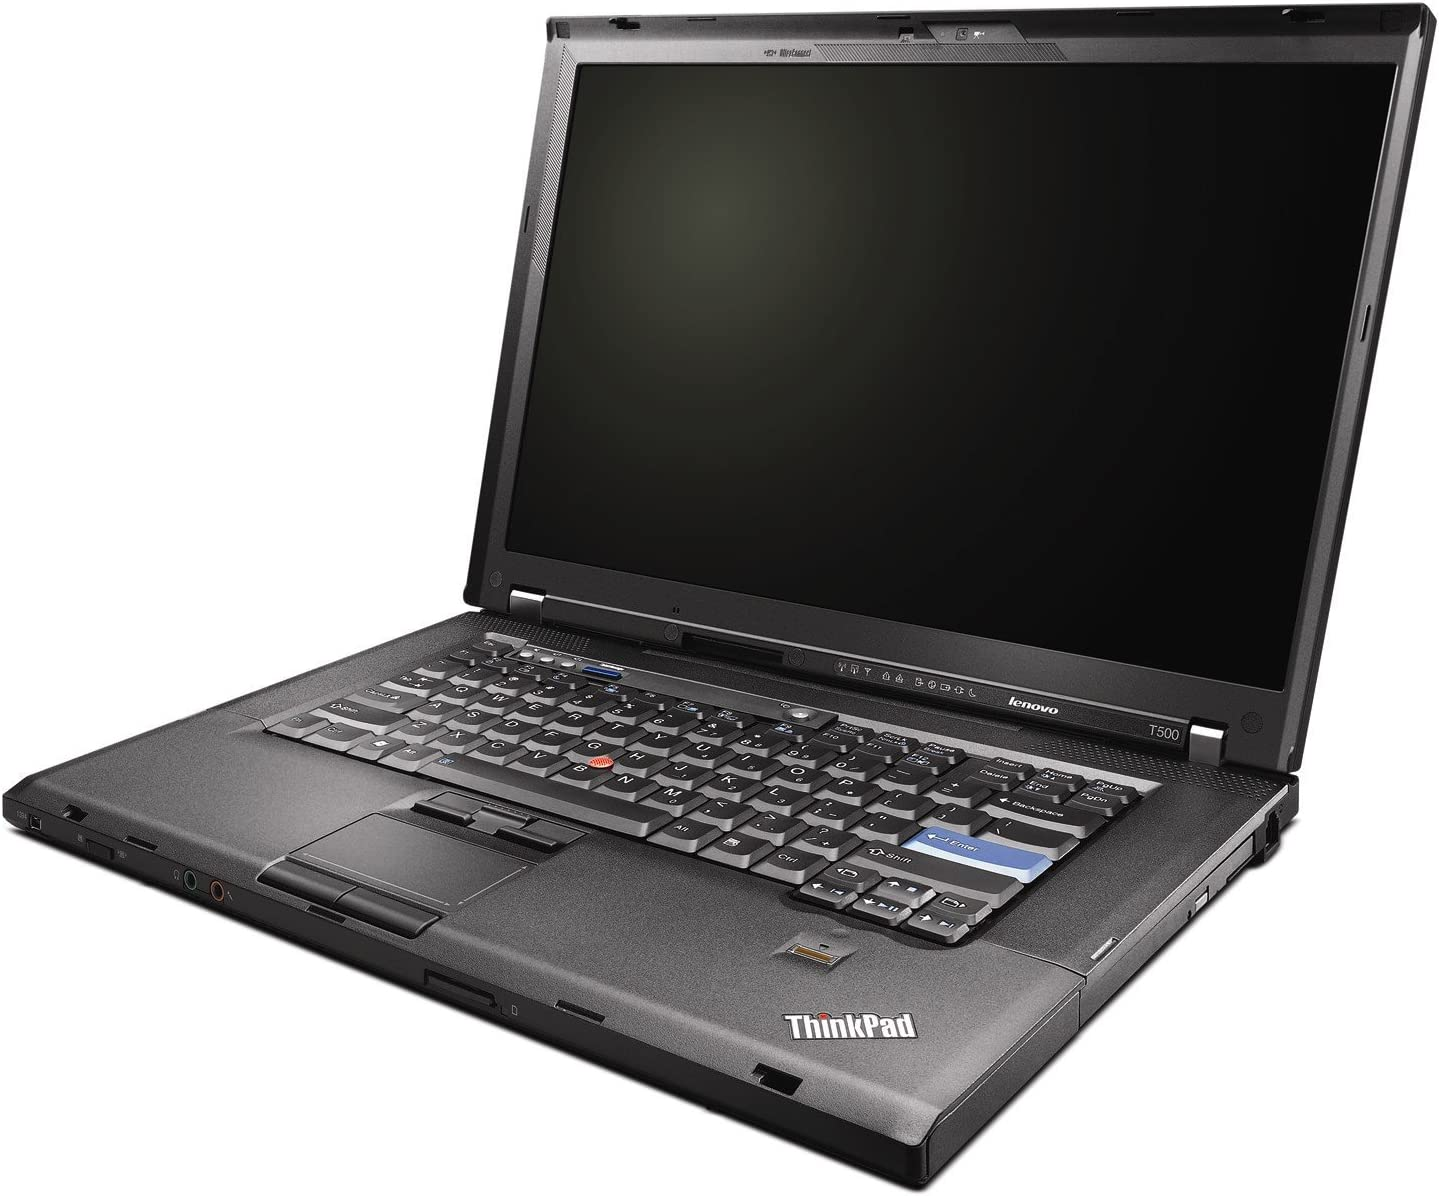 best cheap laptops under 150